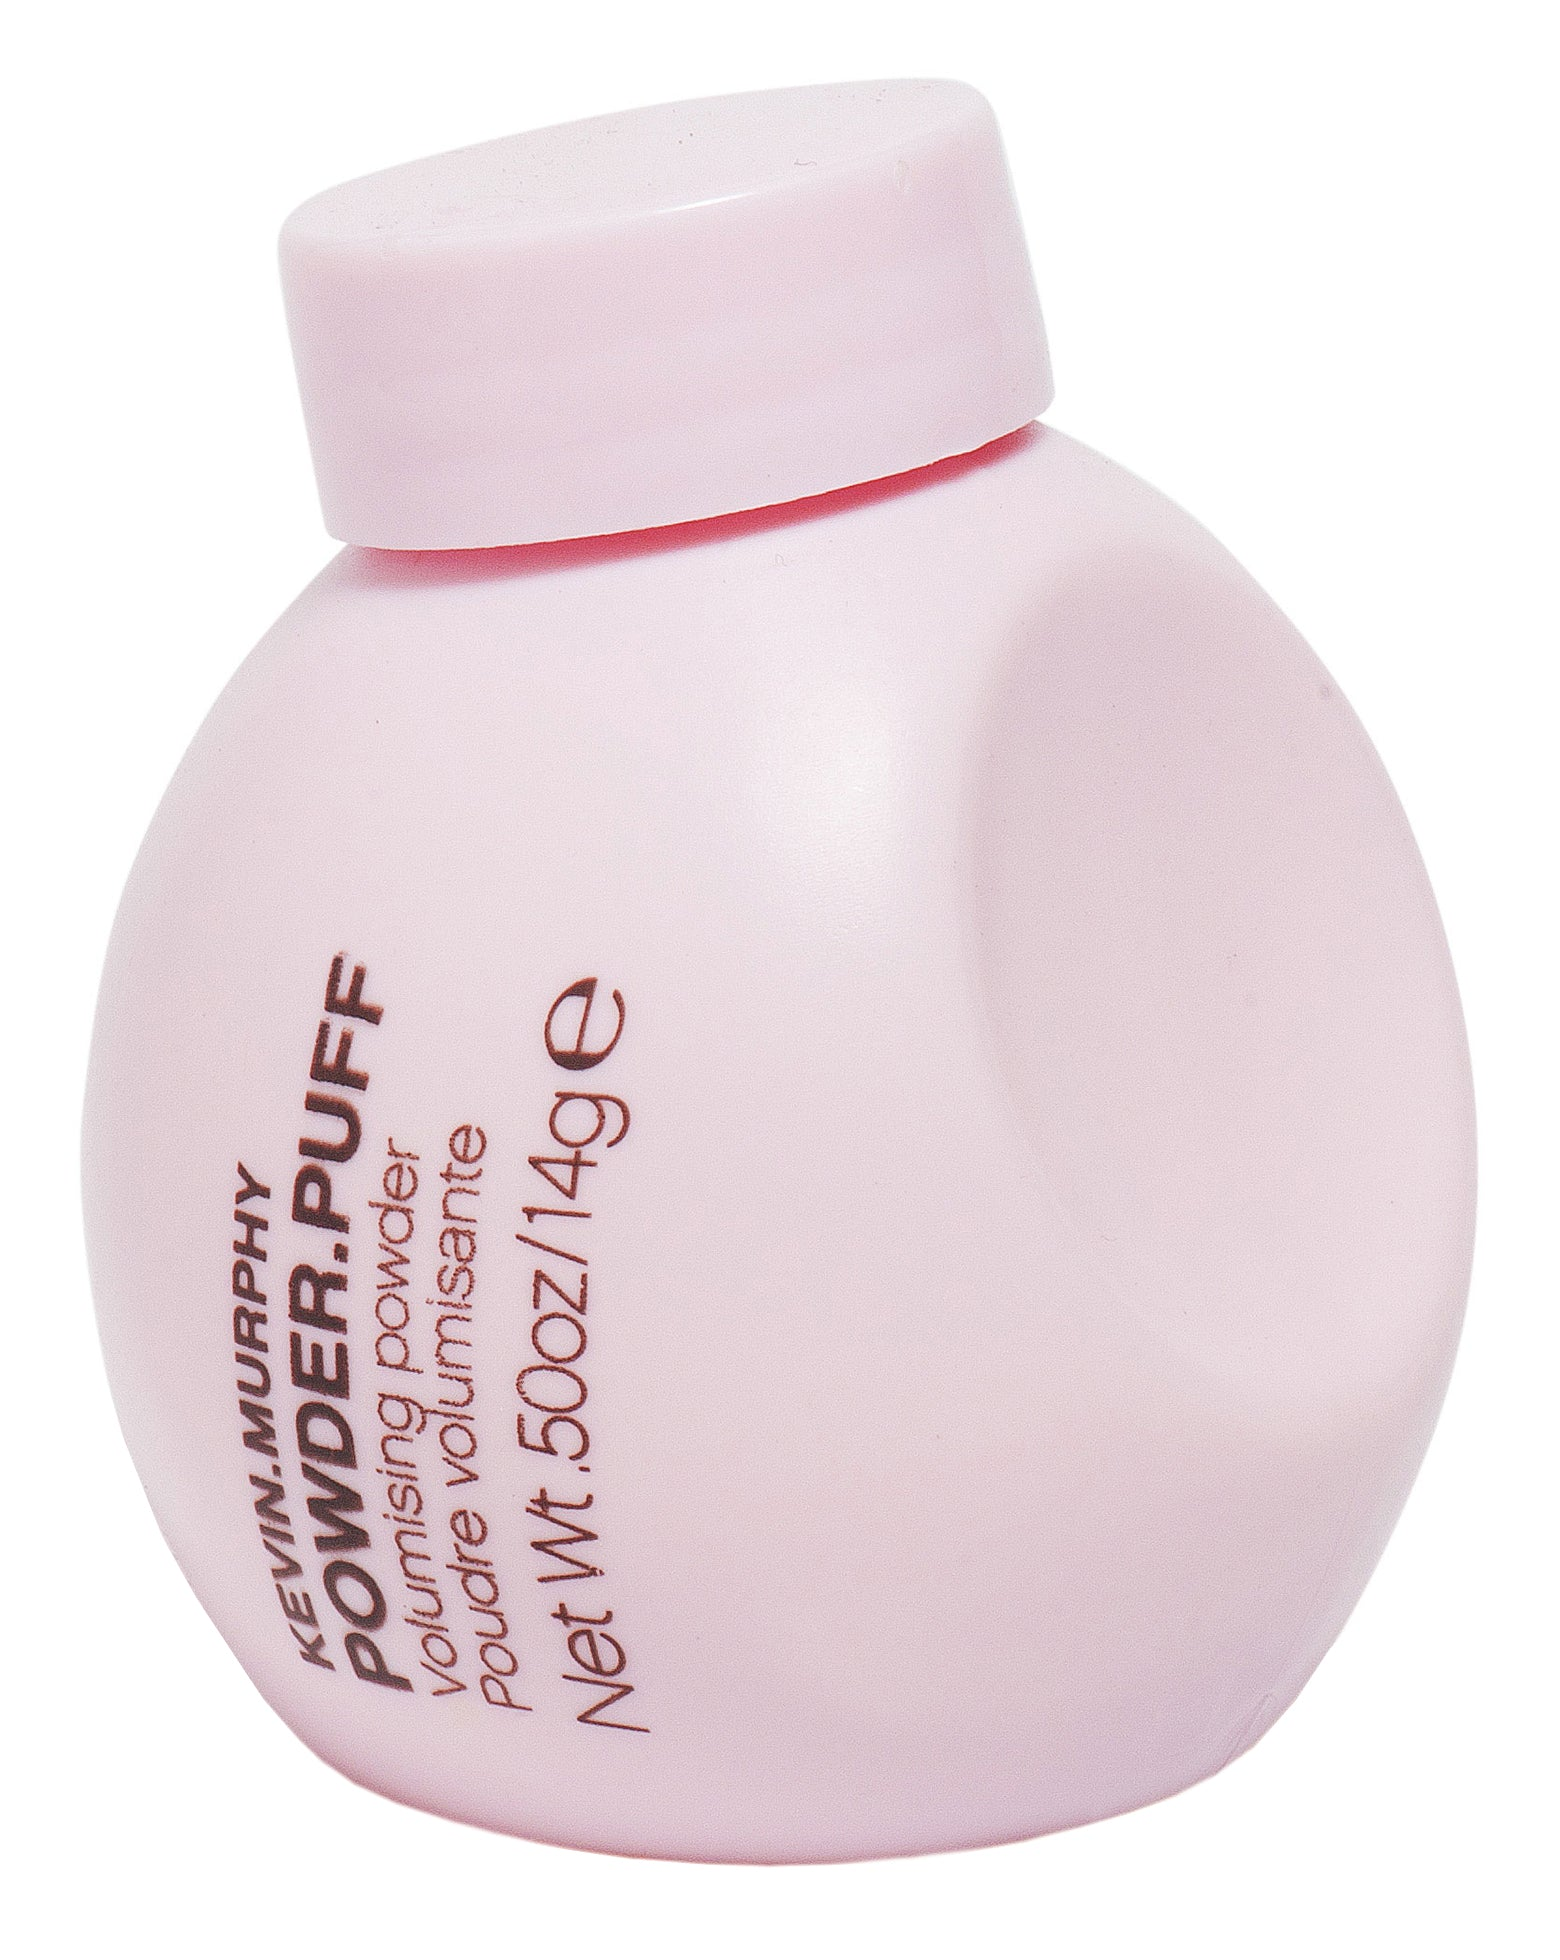 Powder Puff - The Perfect Products